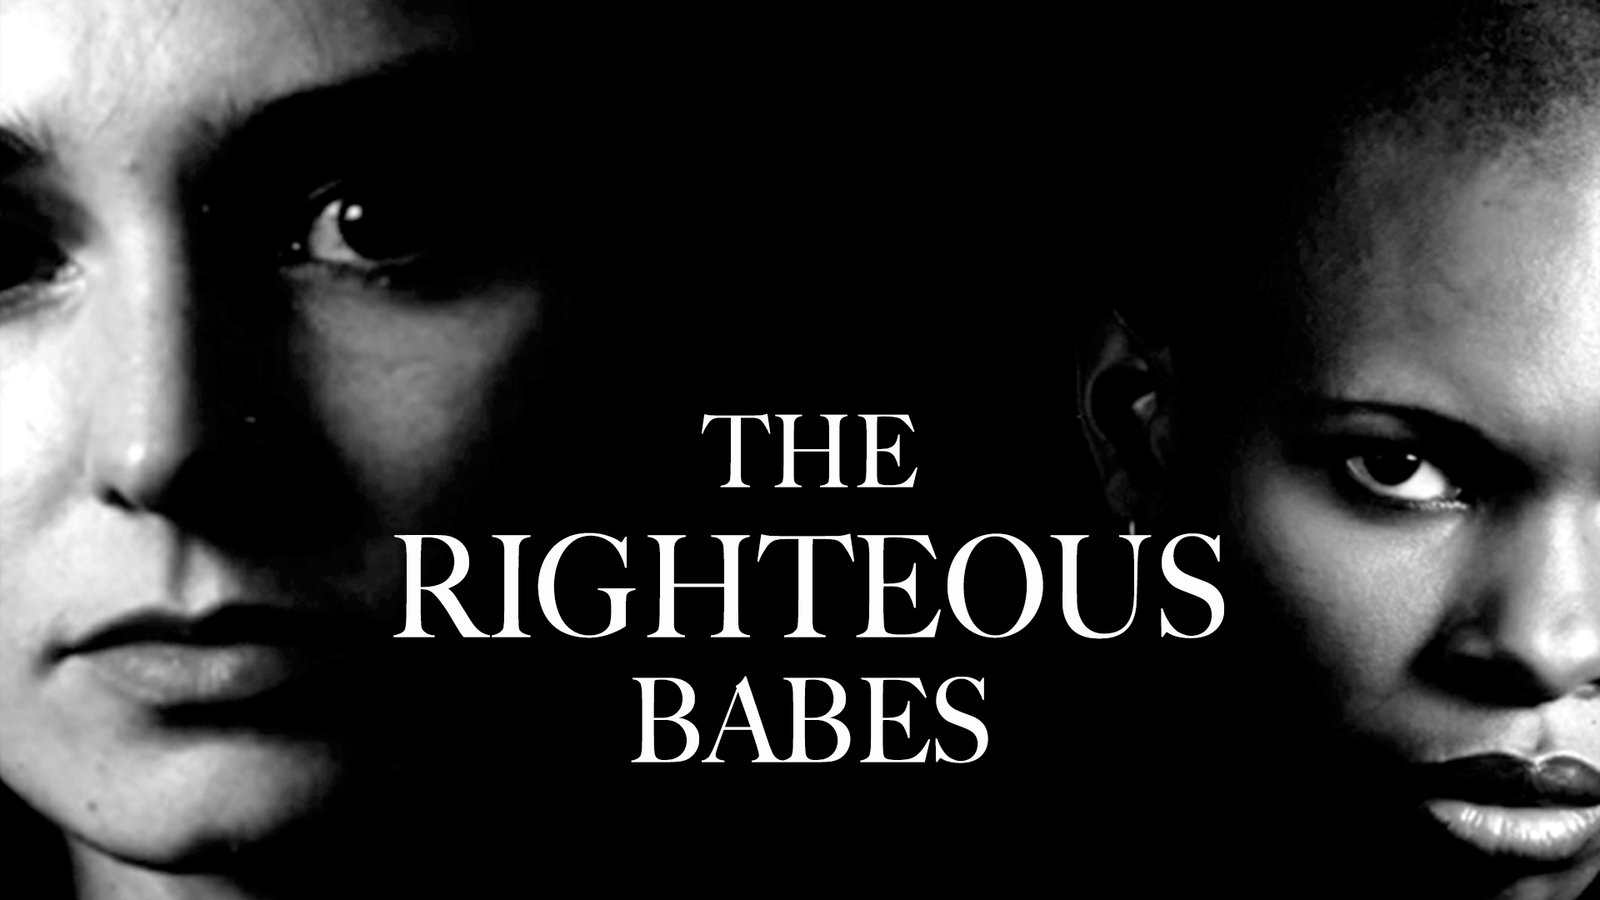 The Righteous Babes - Feminism and Rock Music in the 1990's